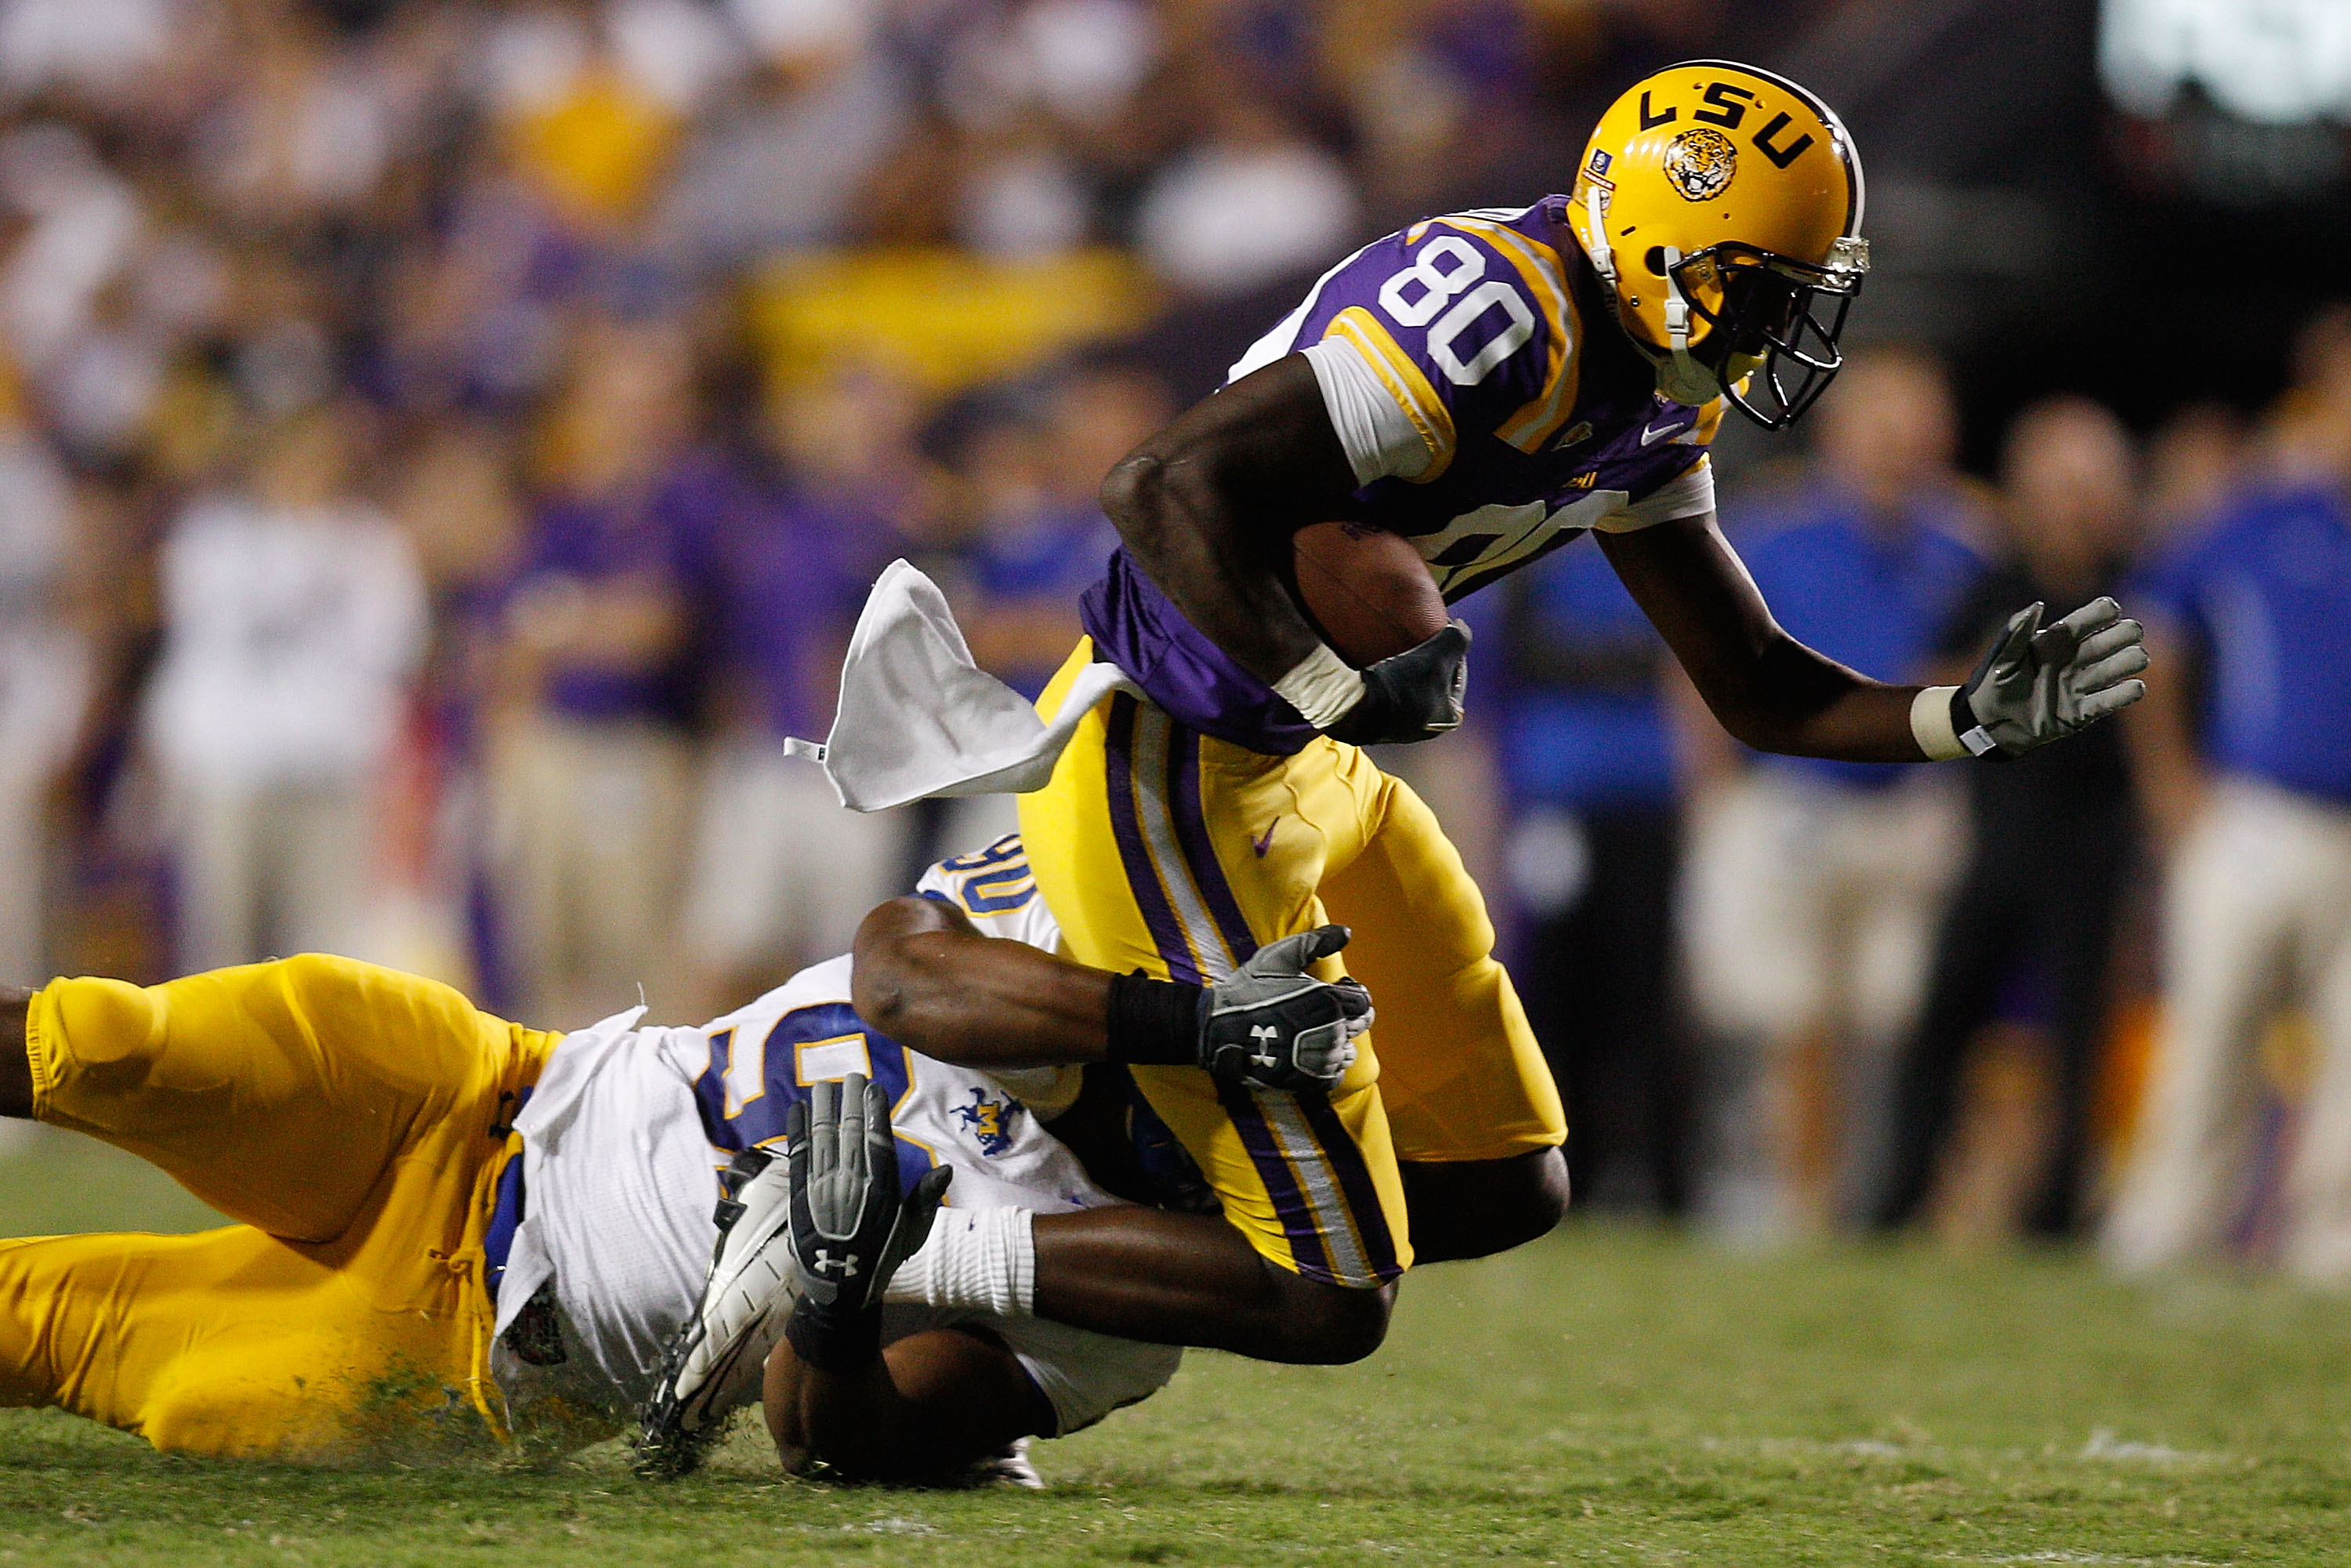 BATON ROUGE, LA - OCTOBER 16:   Terrence Toliver #80 of the Louisiana State University Tigers is tackled by Pat Williams #90 of the McNeese State Cowboys at Tiger Stadium on October 16, 2010 in Baton Rouge, Louisiana.  The Tigers defeated the Cowboys 32-1